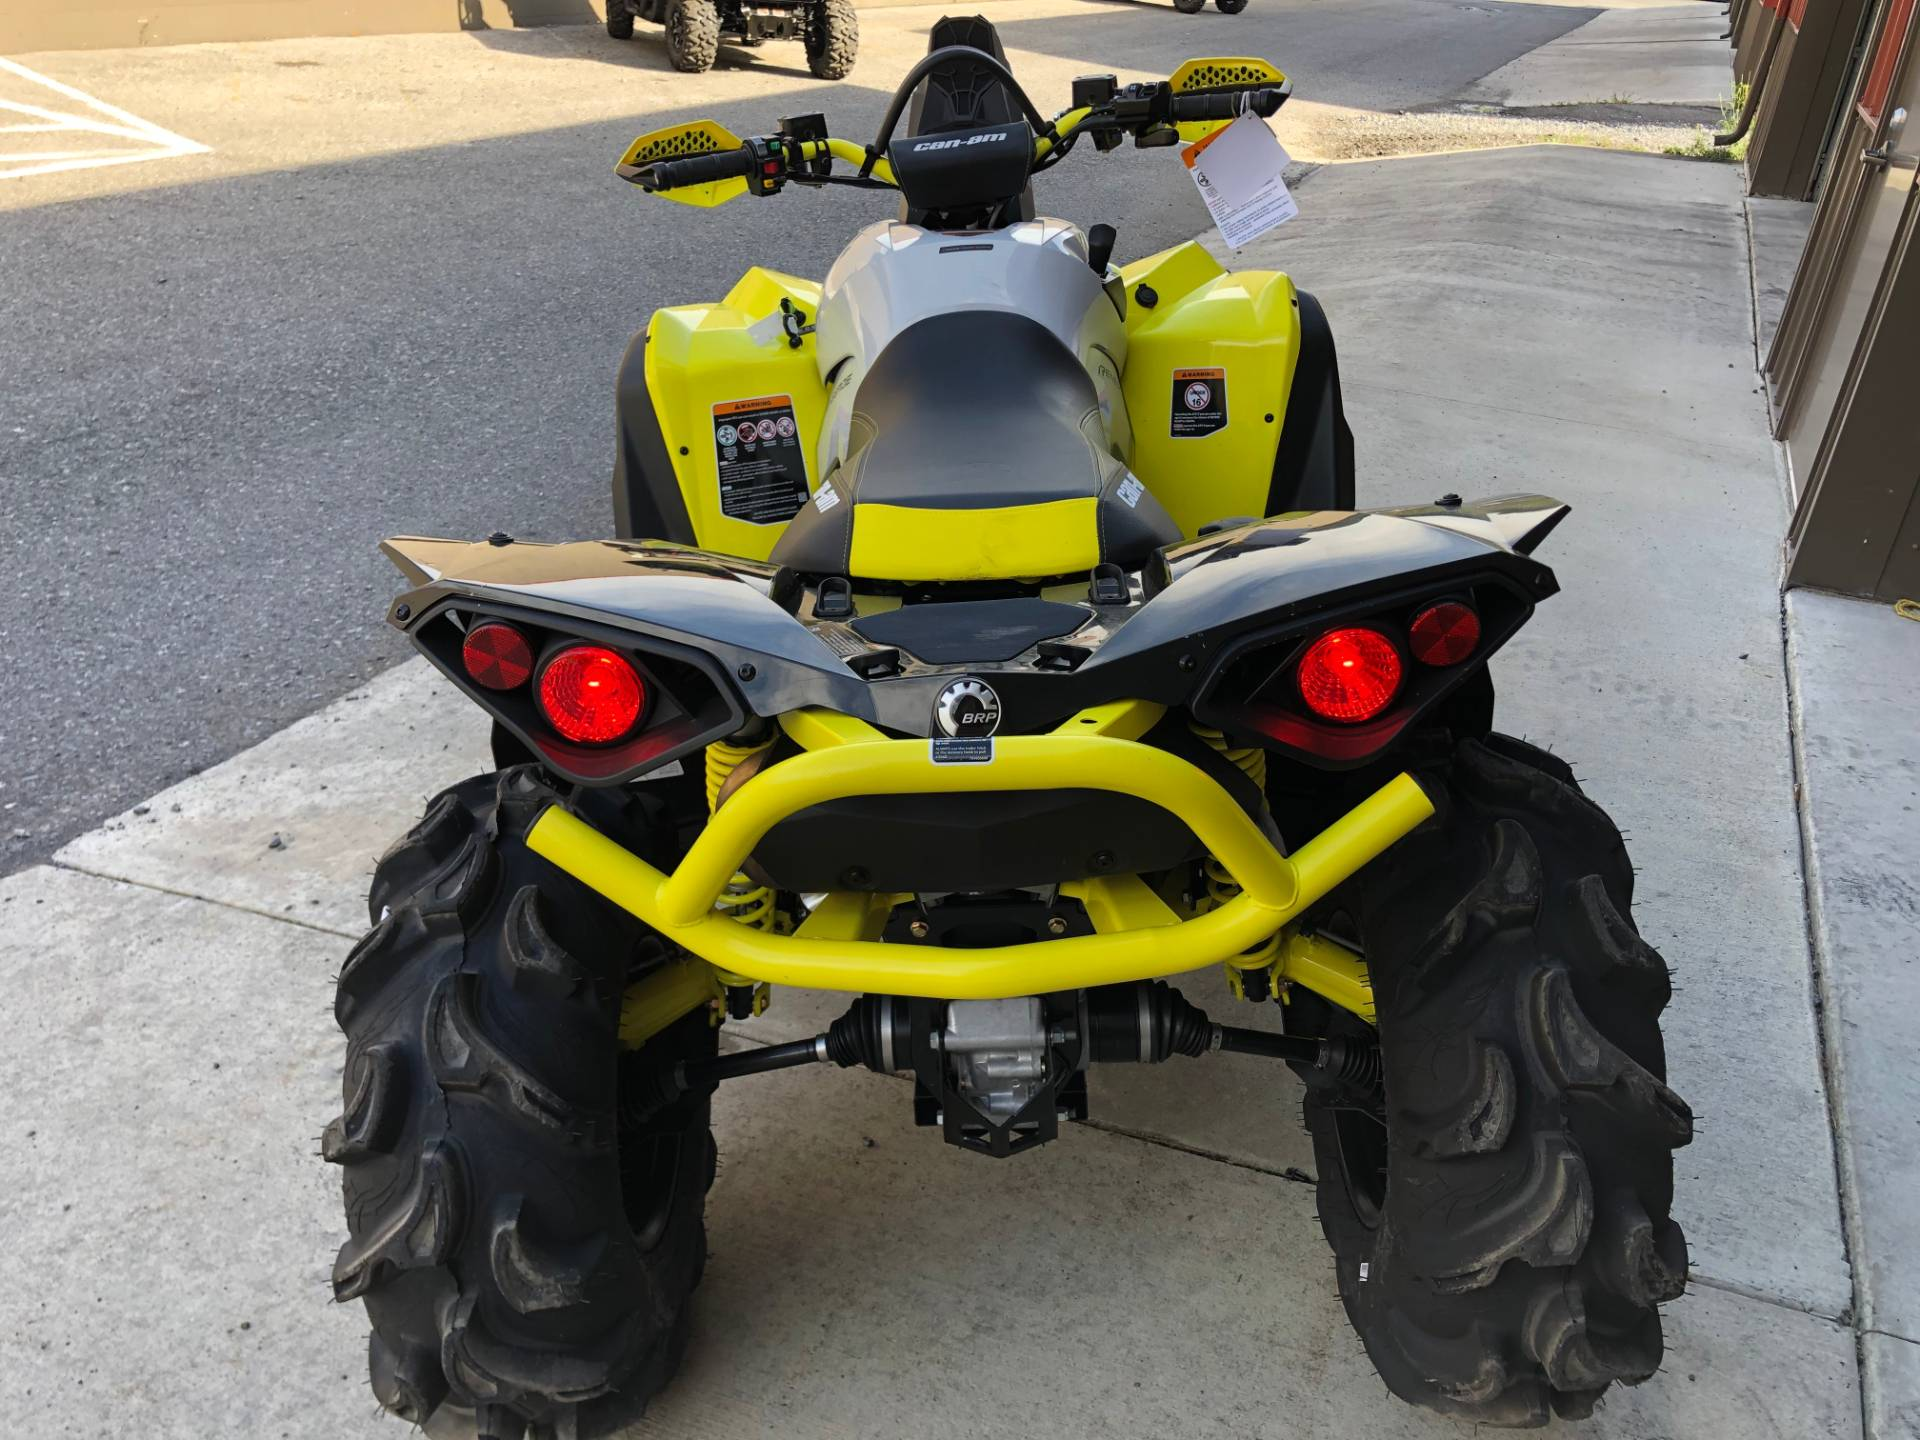 2019 Can-Am Renegade X MR 570 in Tyrone, Pennsylvania - Photo 4